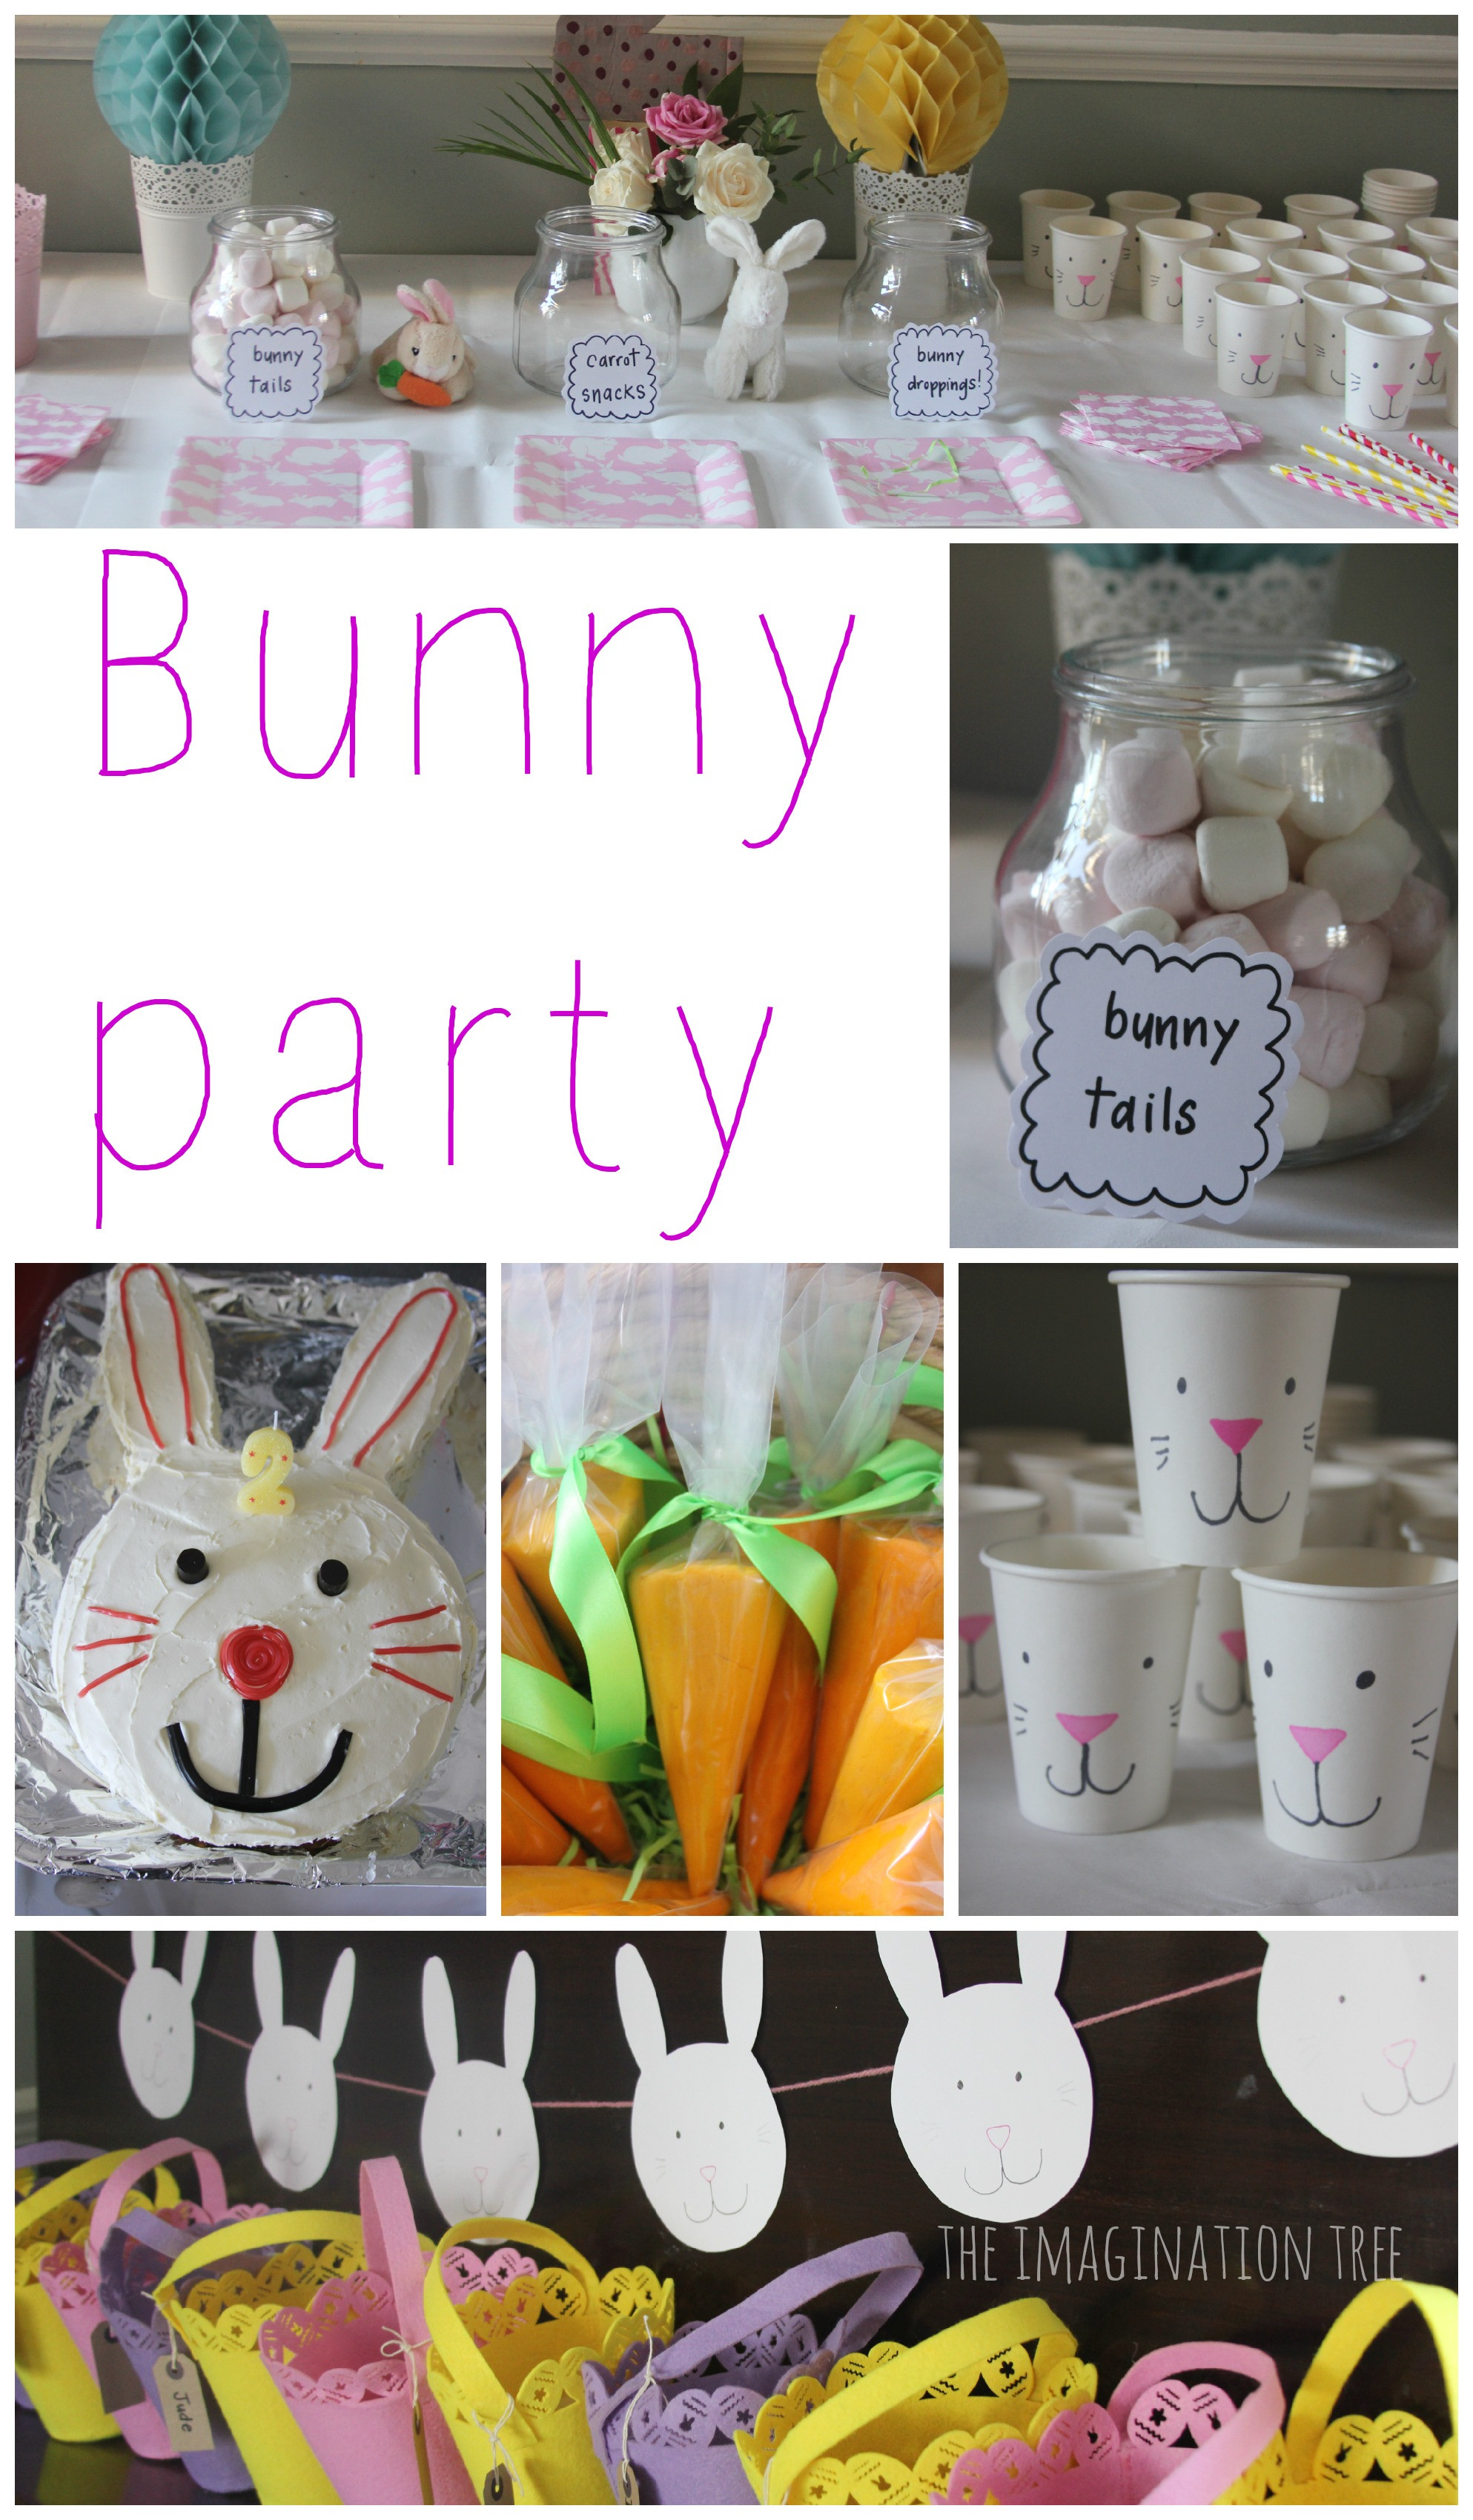 School Easter Party Food Ideas  Bunny Birthday Party The Imagination Tree